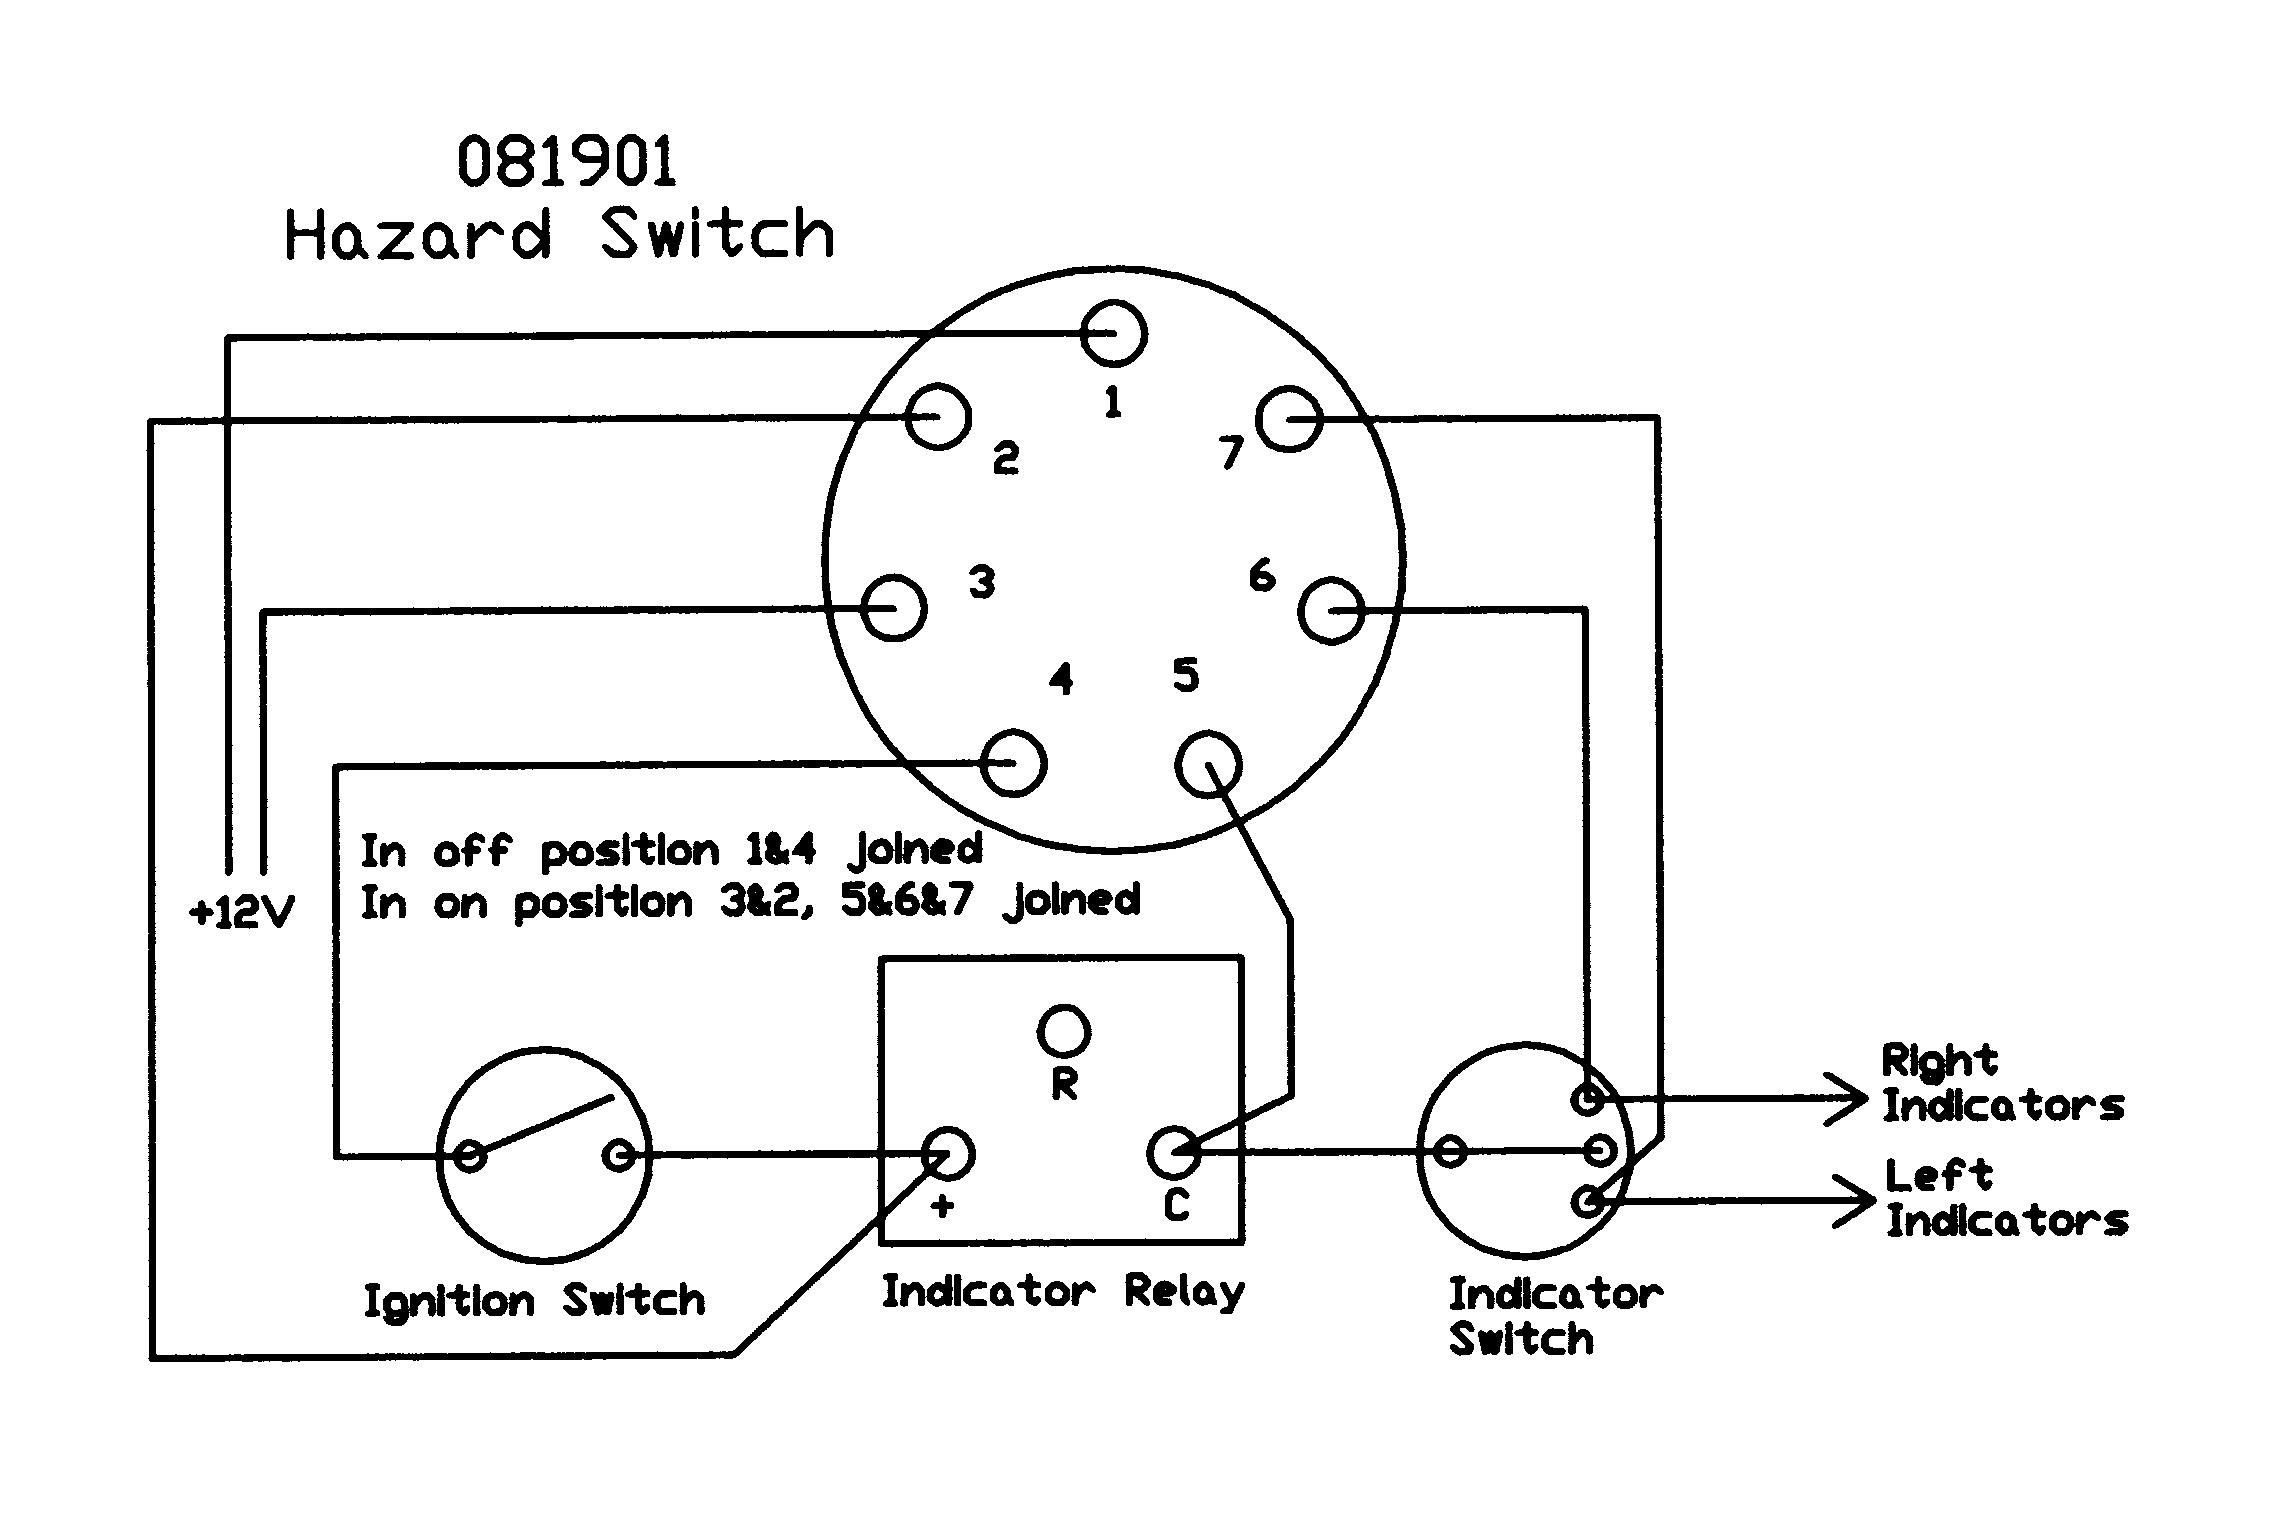 diagram] simple auto hazard light wiring diagram full version hd quality wiring  diagram - nextgradebook.hotel-patton.fr  nextgradebook.hotel-patton.fr